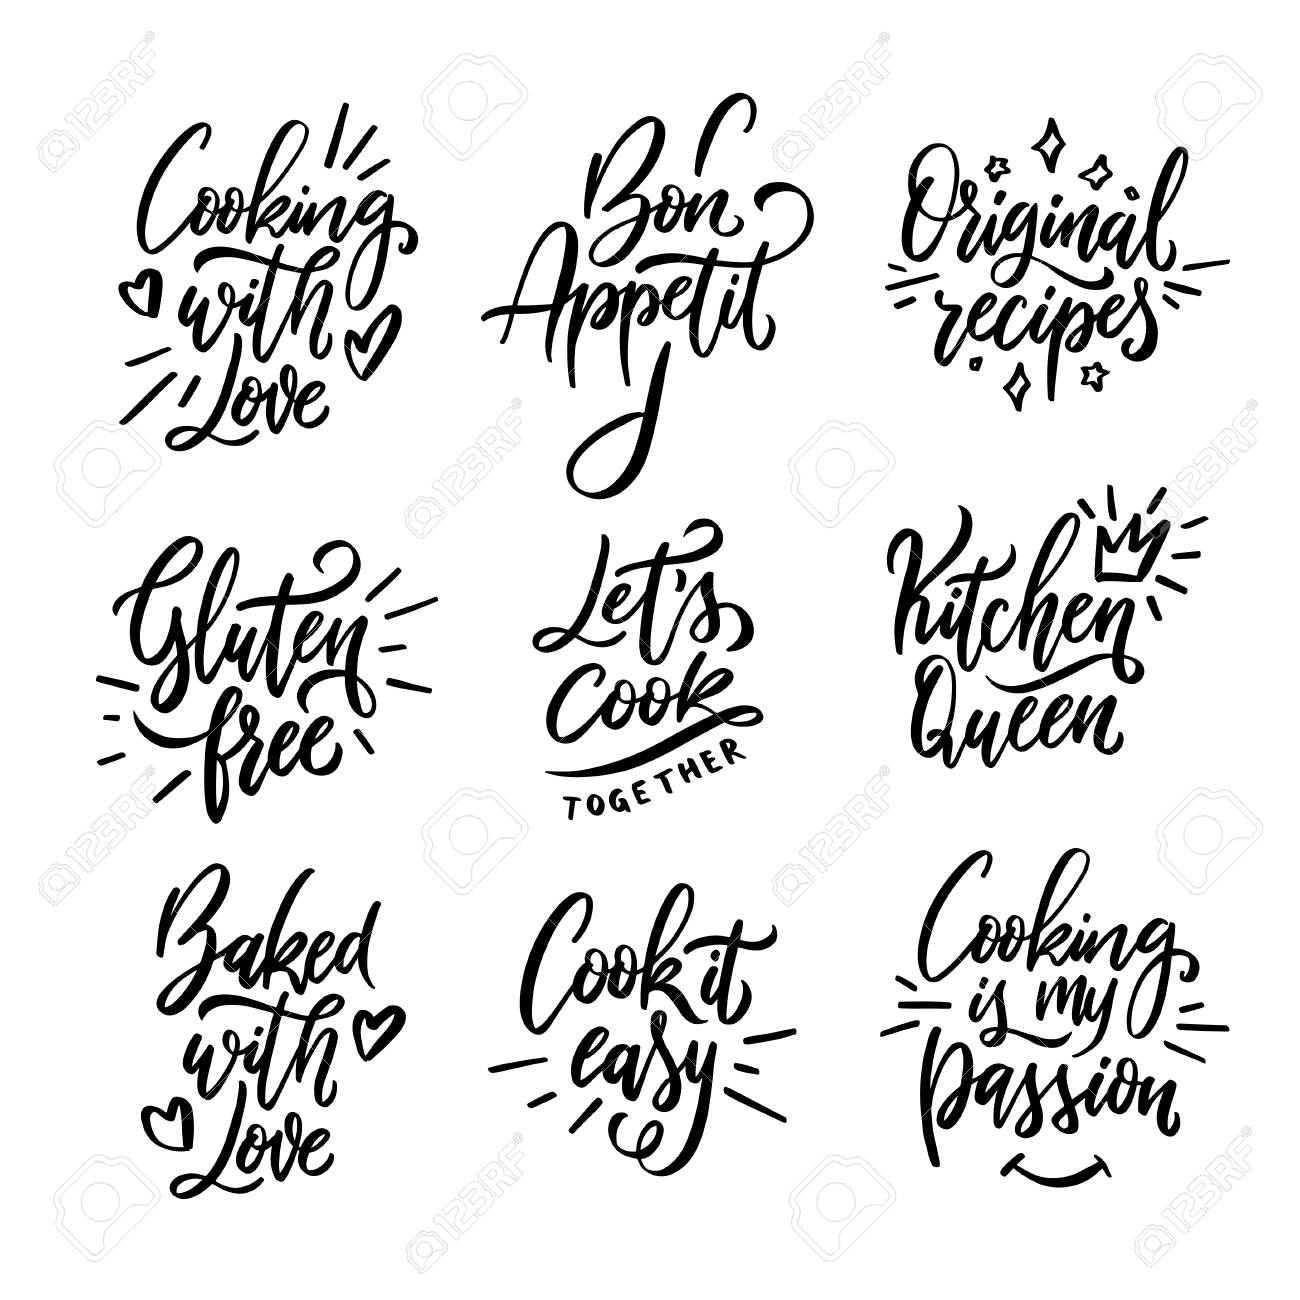 Cooking related quotes collection. Hand drawn kitchen calligraphy. Gluten free. Cooking with love. Cook it easy. Kitchen queen. Original recipes. Typography design elements set. Vector illustration. - 110059137